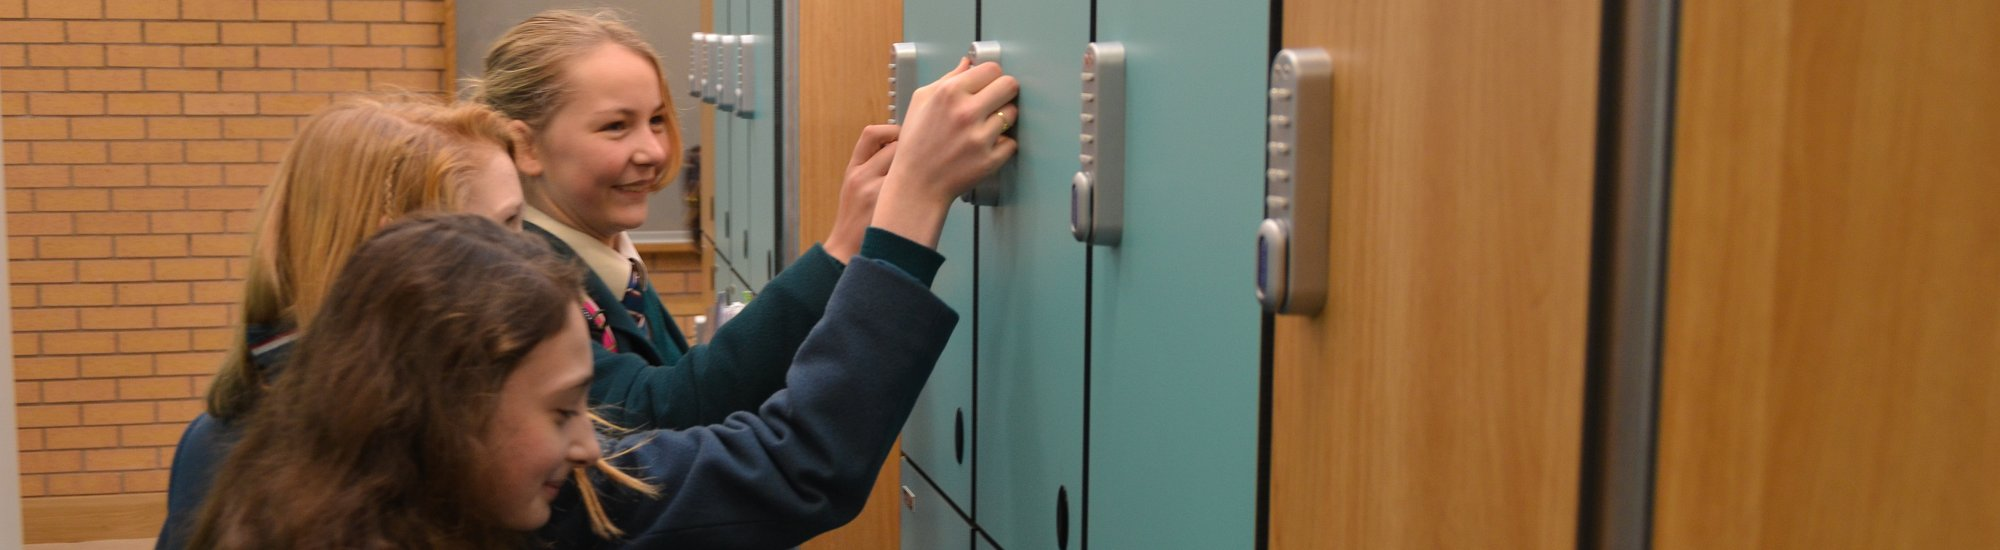 Pupils at lockers